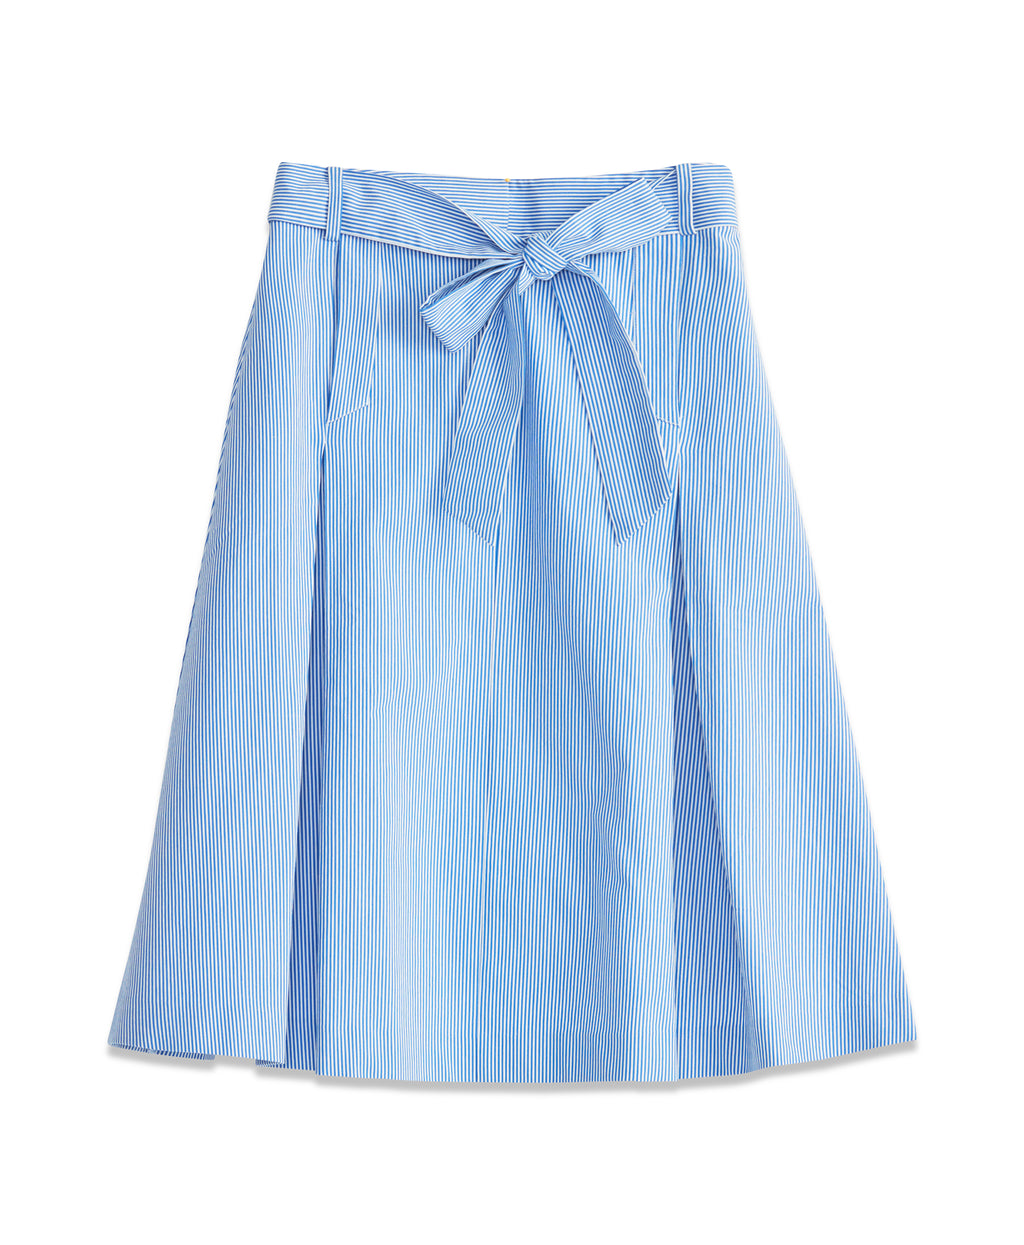 Sailor Skirt | Sailor Skirt